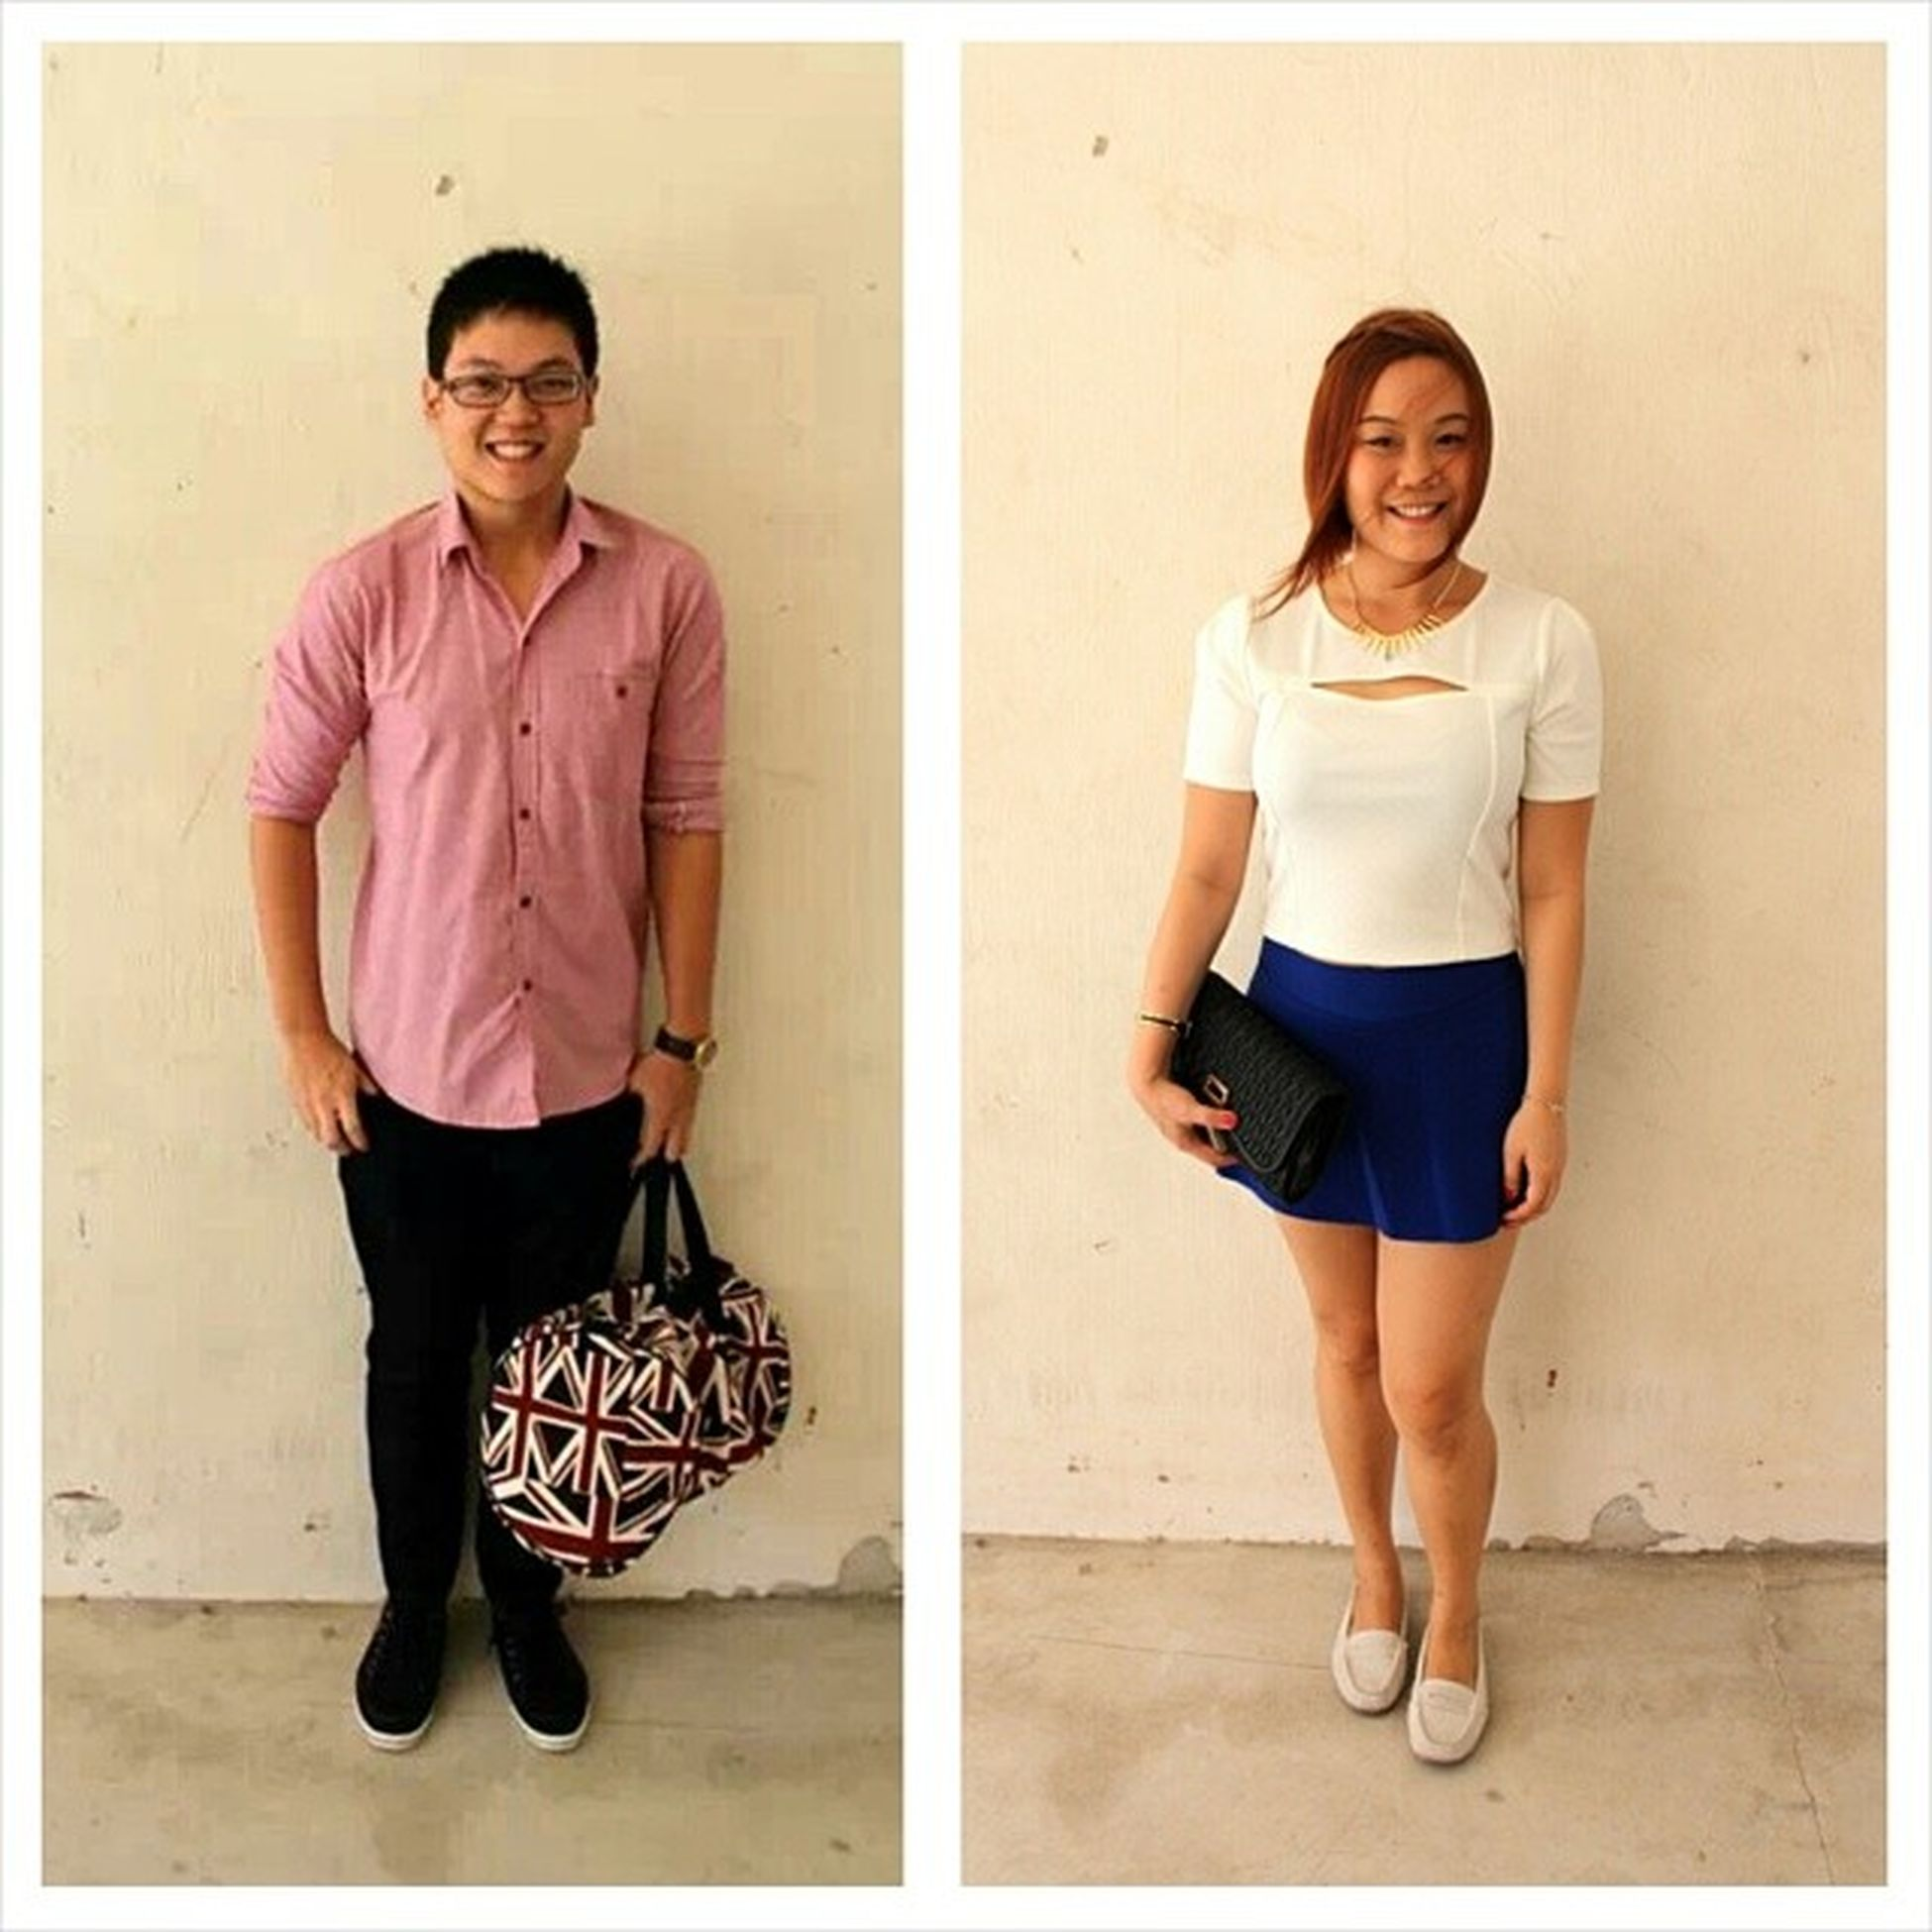 The Ootd of I and @stungxo for 初一.